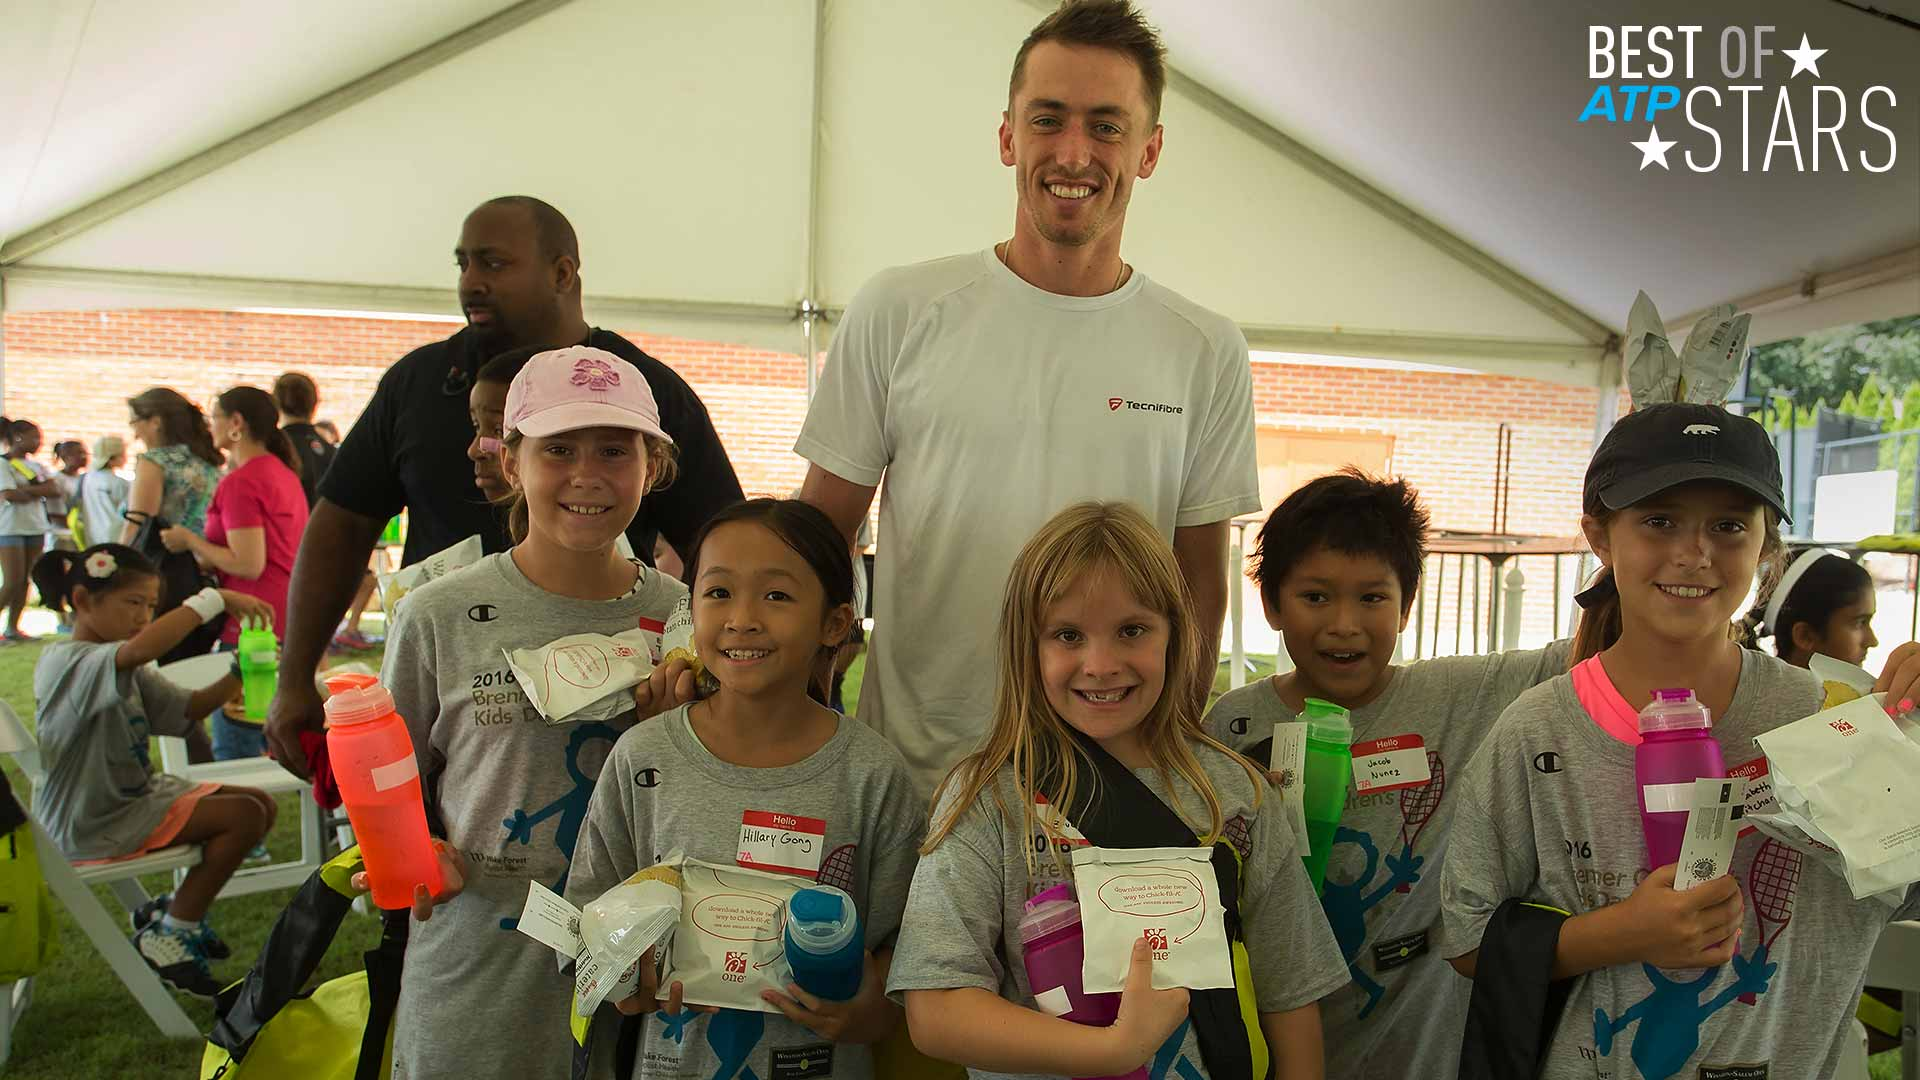 John Millman makes new friends at Kids Day in Winston-Salem.